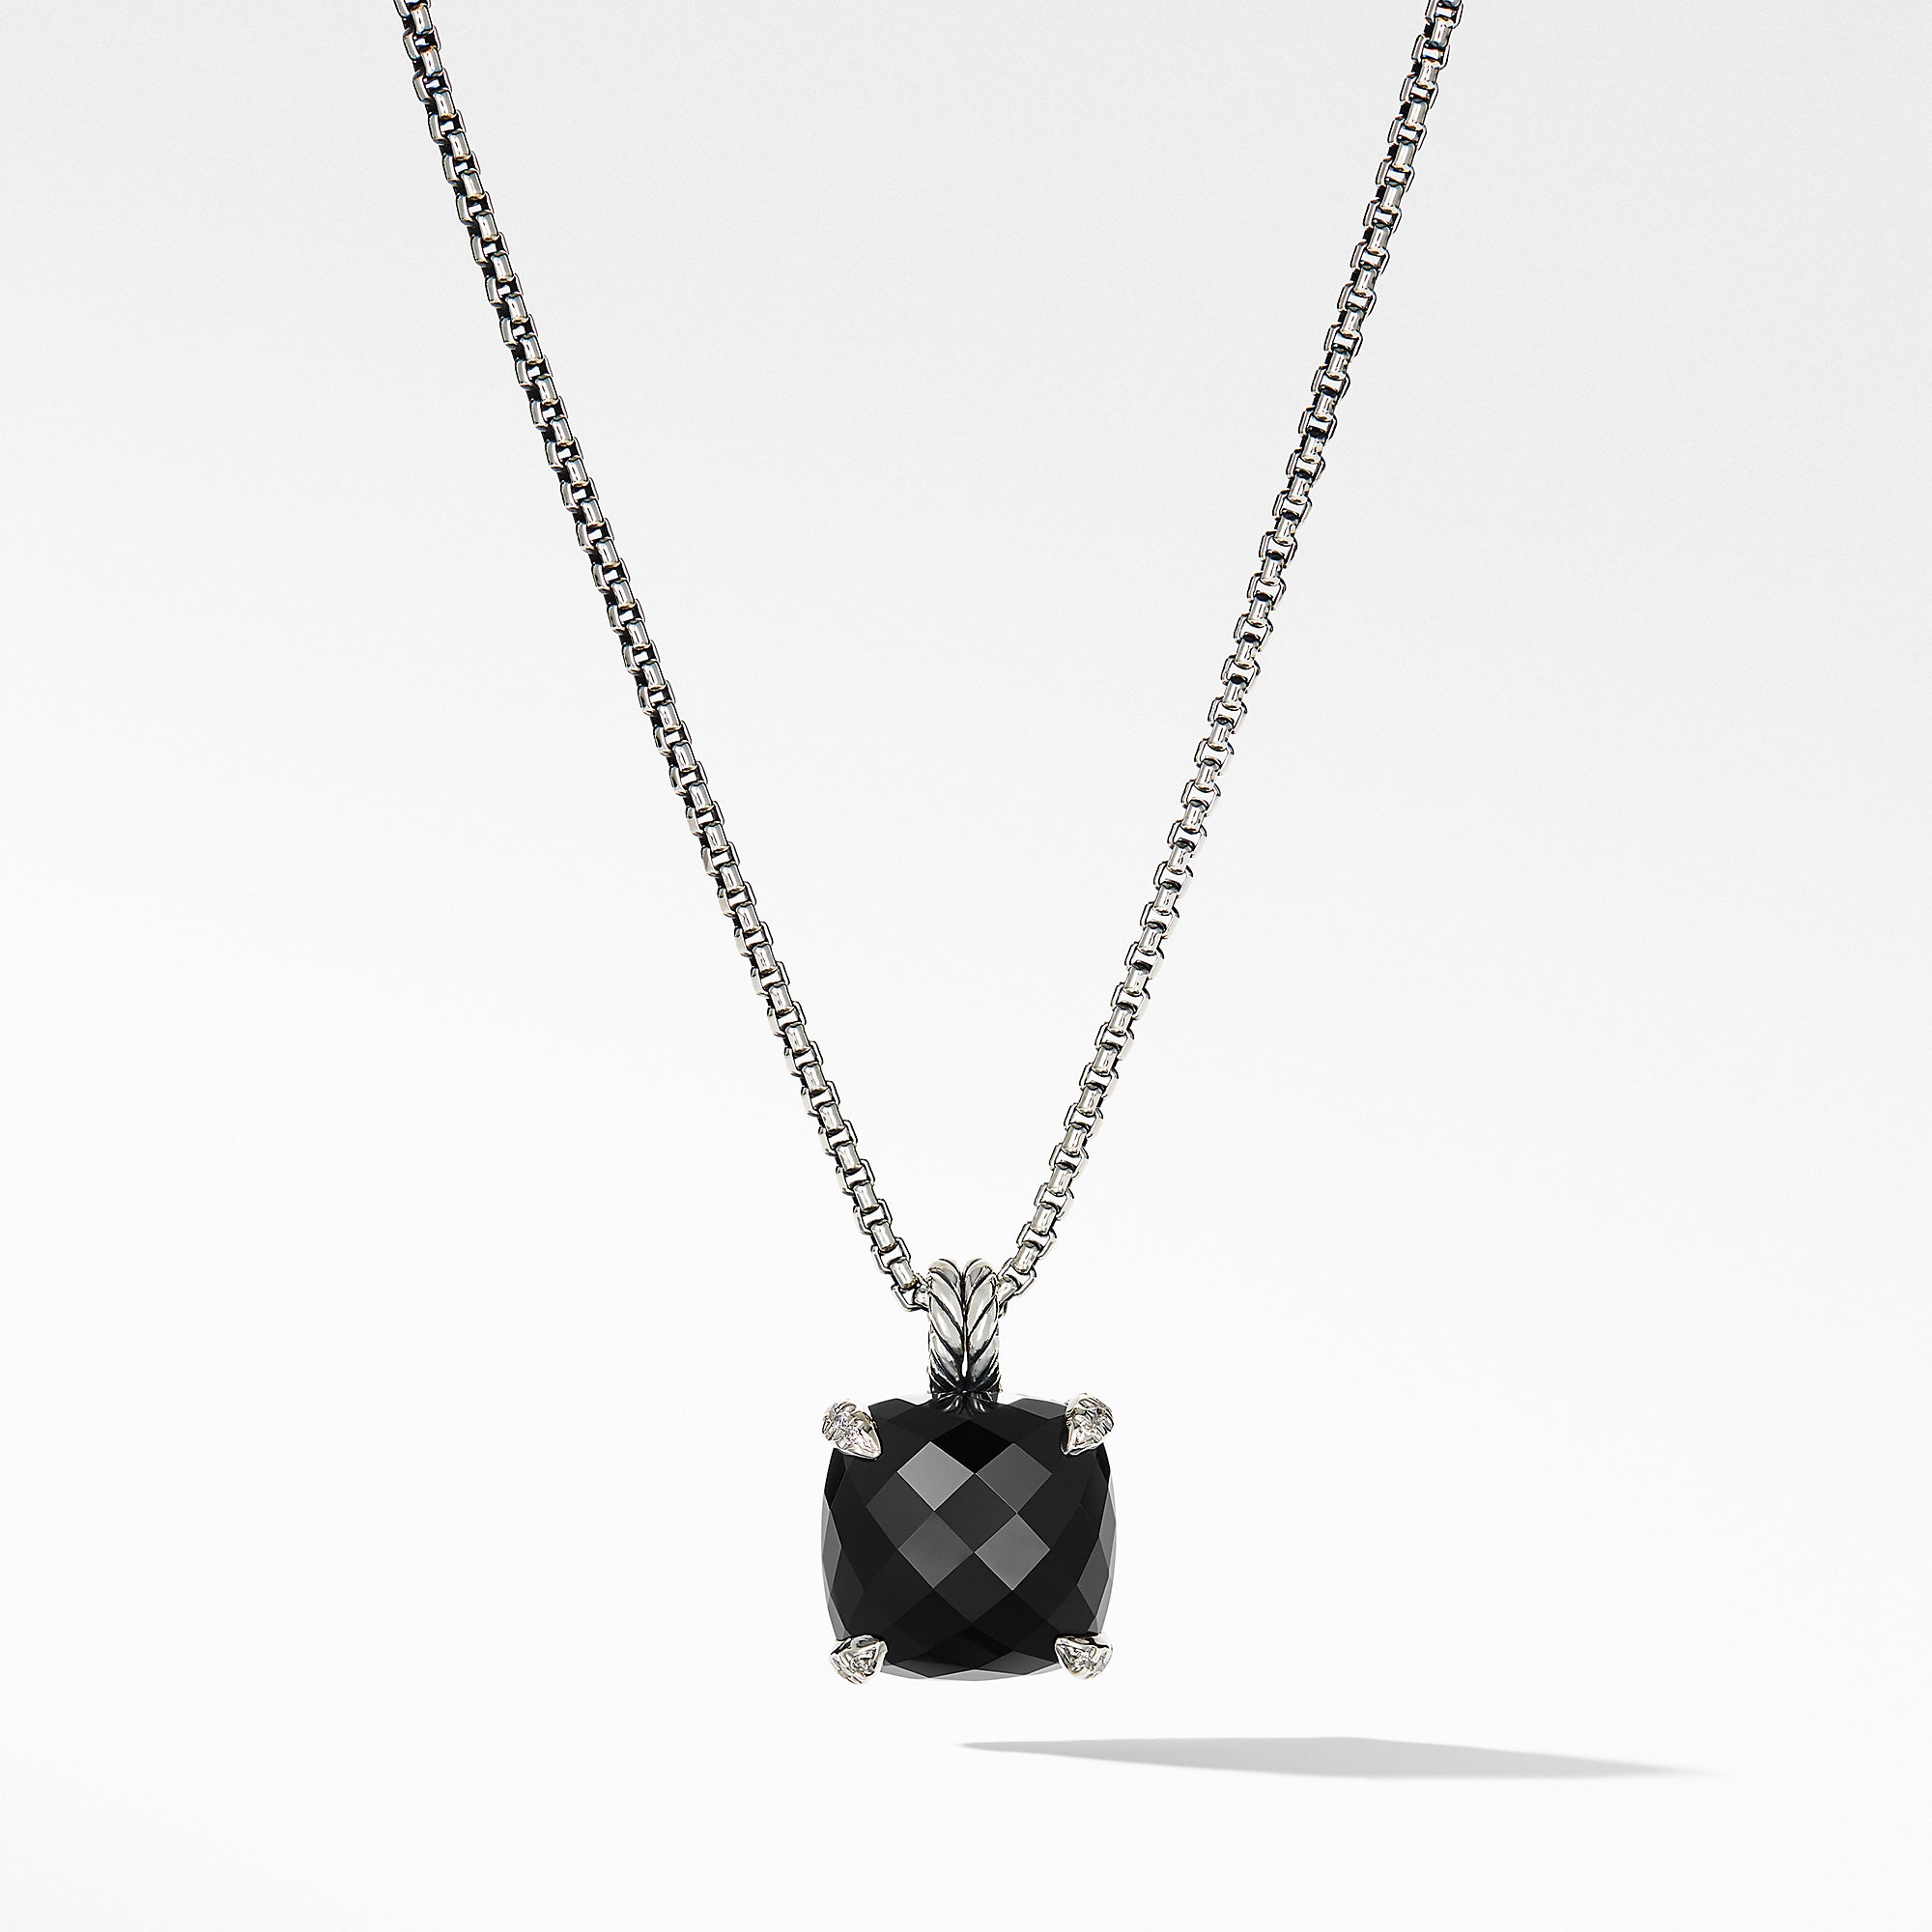 Chatelaine® Pendant Necklace with Black Onyx and Diamonds